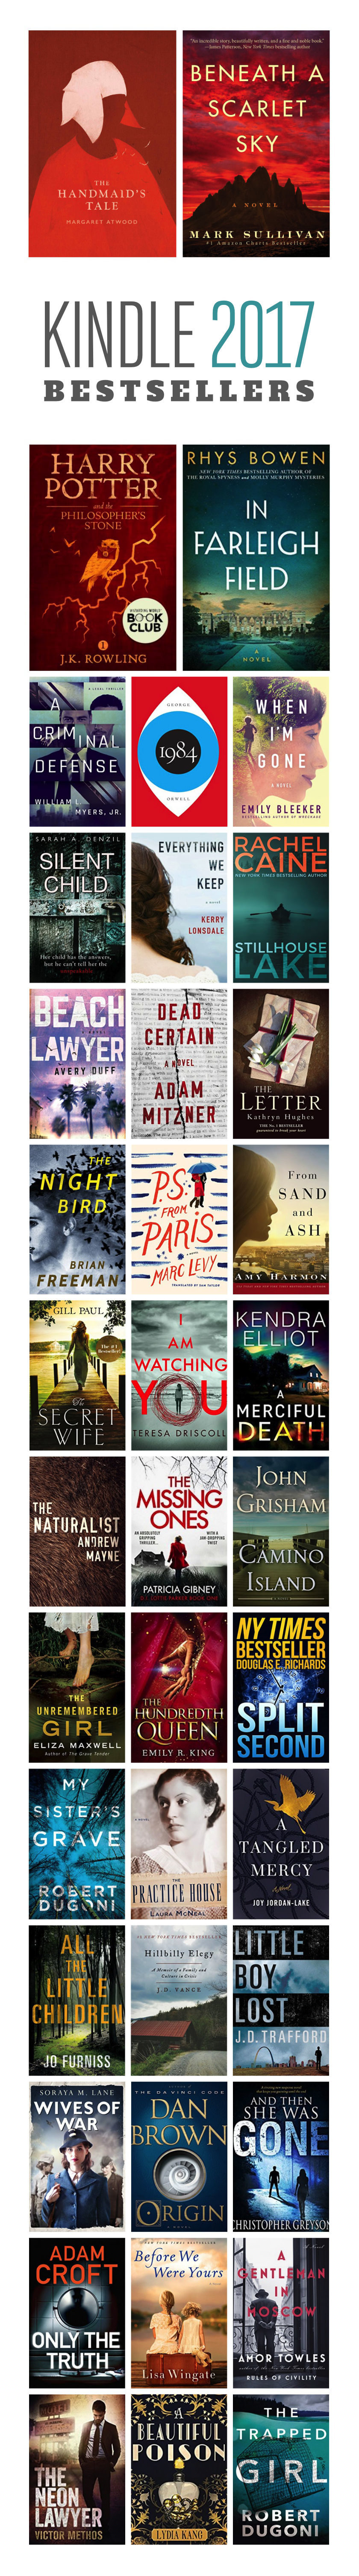 Here are top 100 most popular Kindle books of 2017